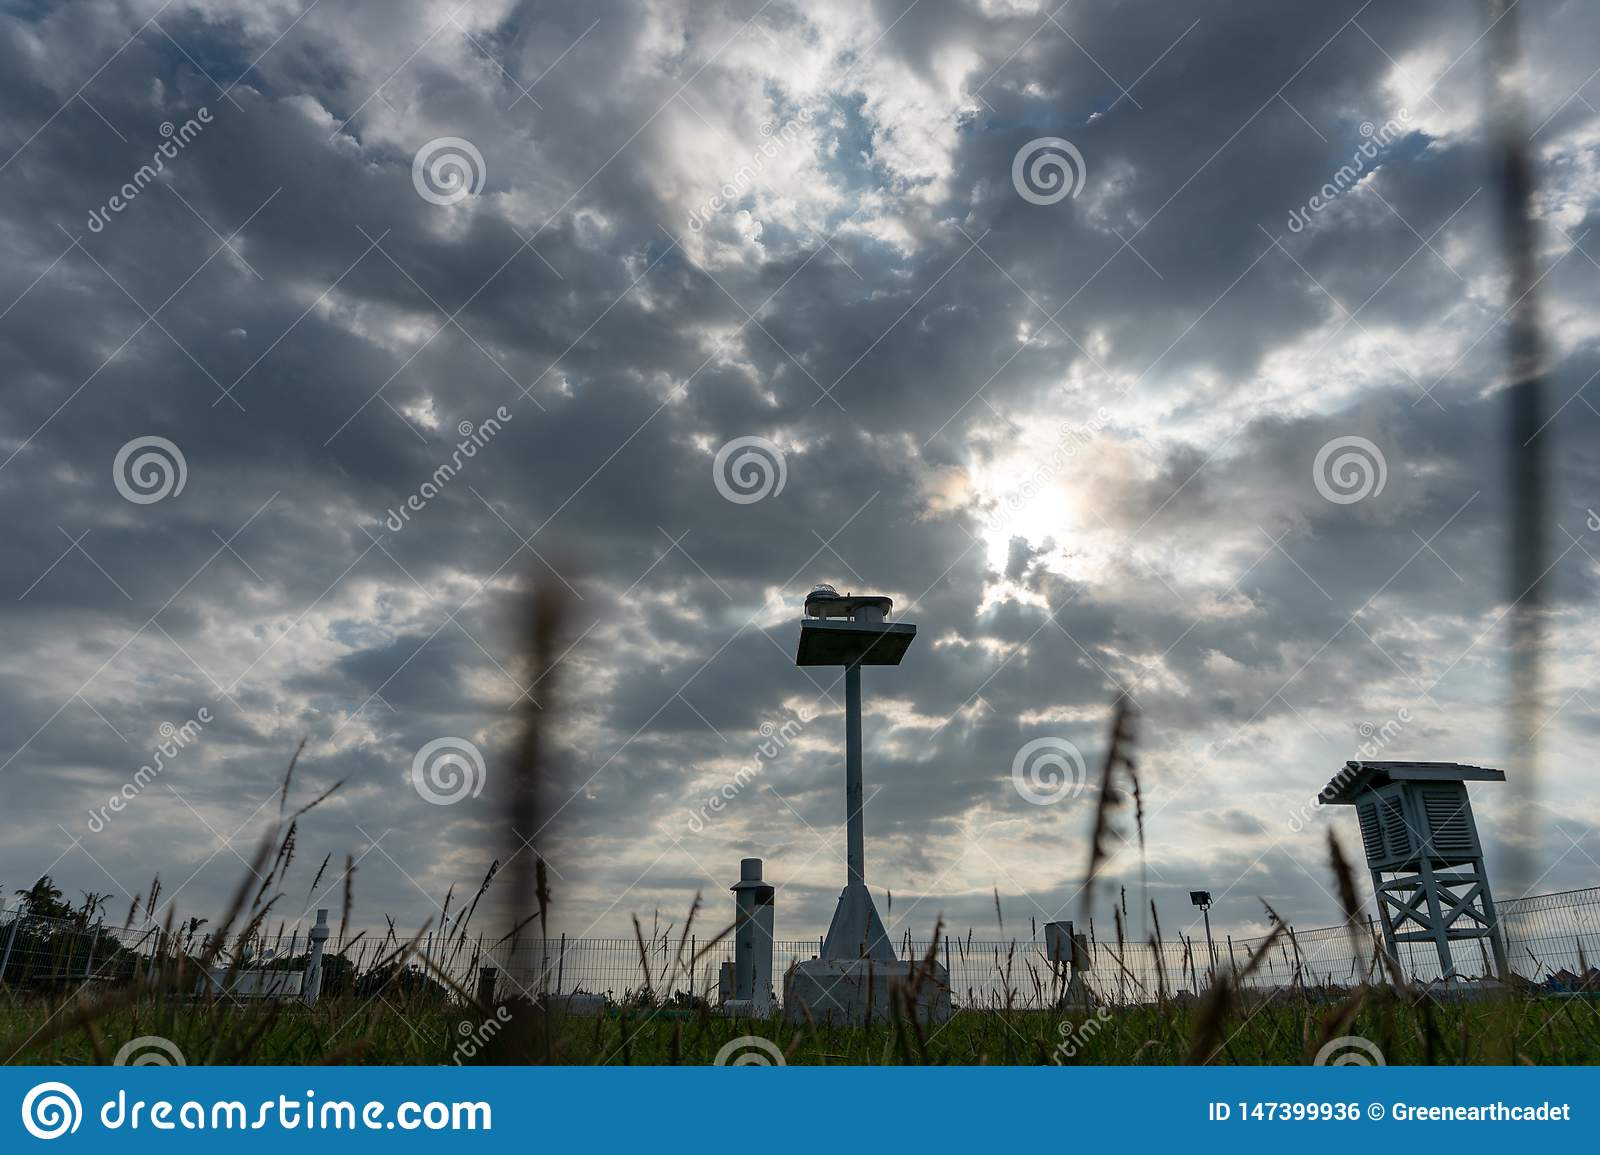 A landscape of Meteorological garden in the morning when the sky full grey cumulus and cirrus clouds with beautiful ray of light